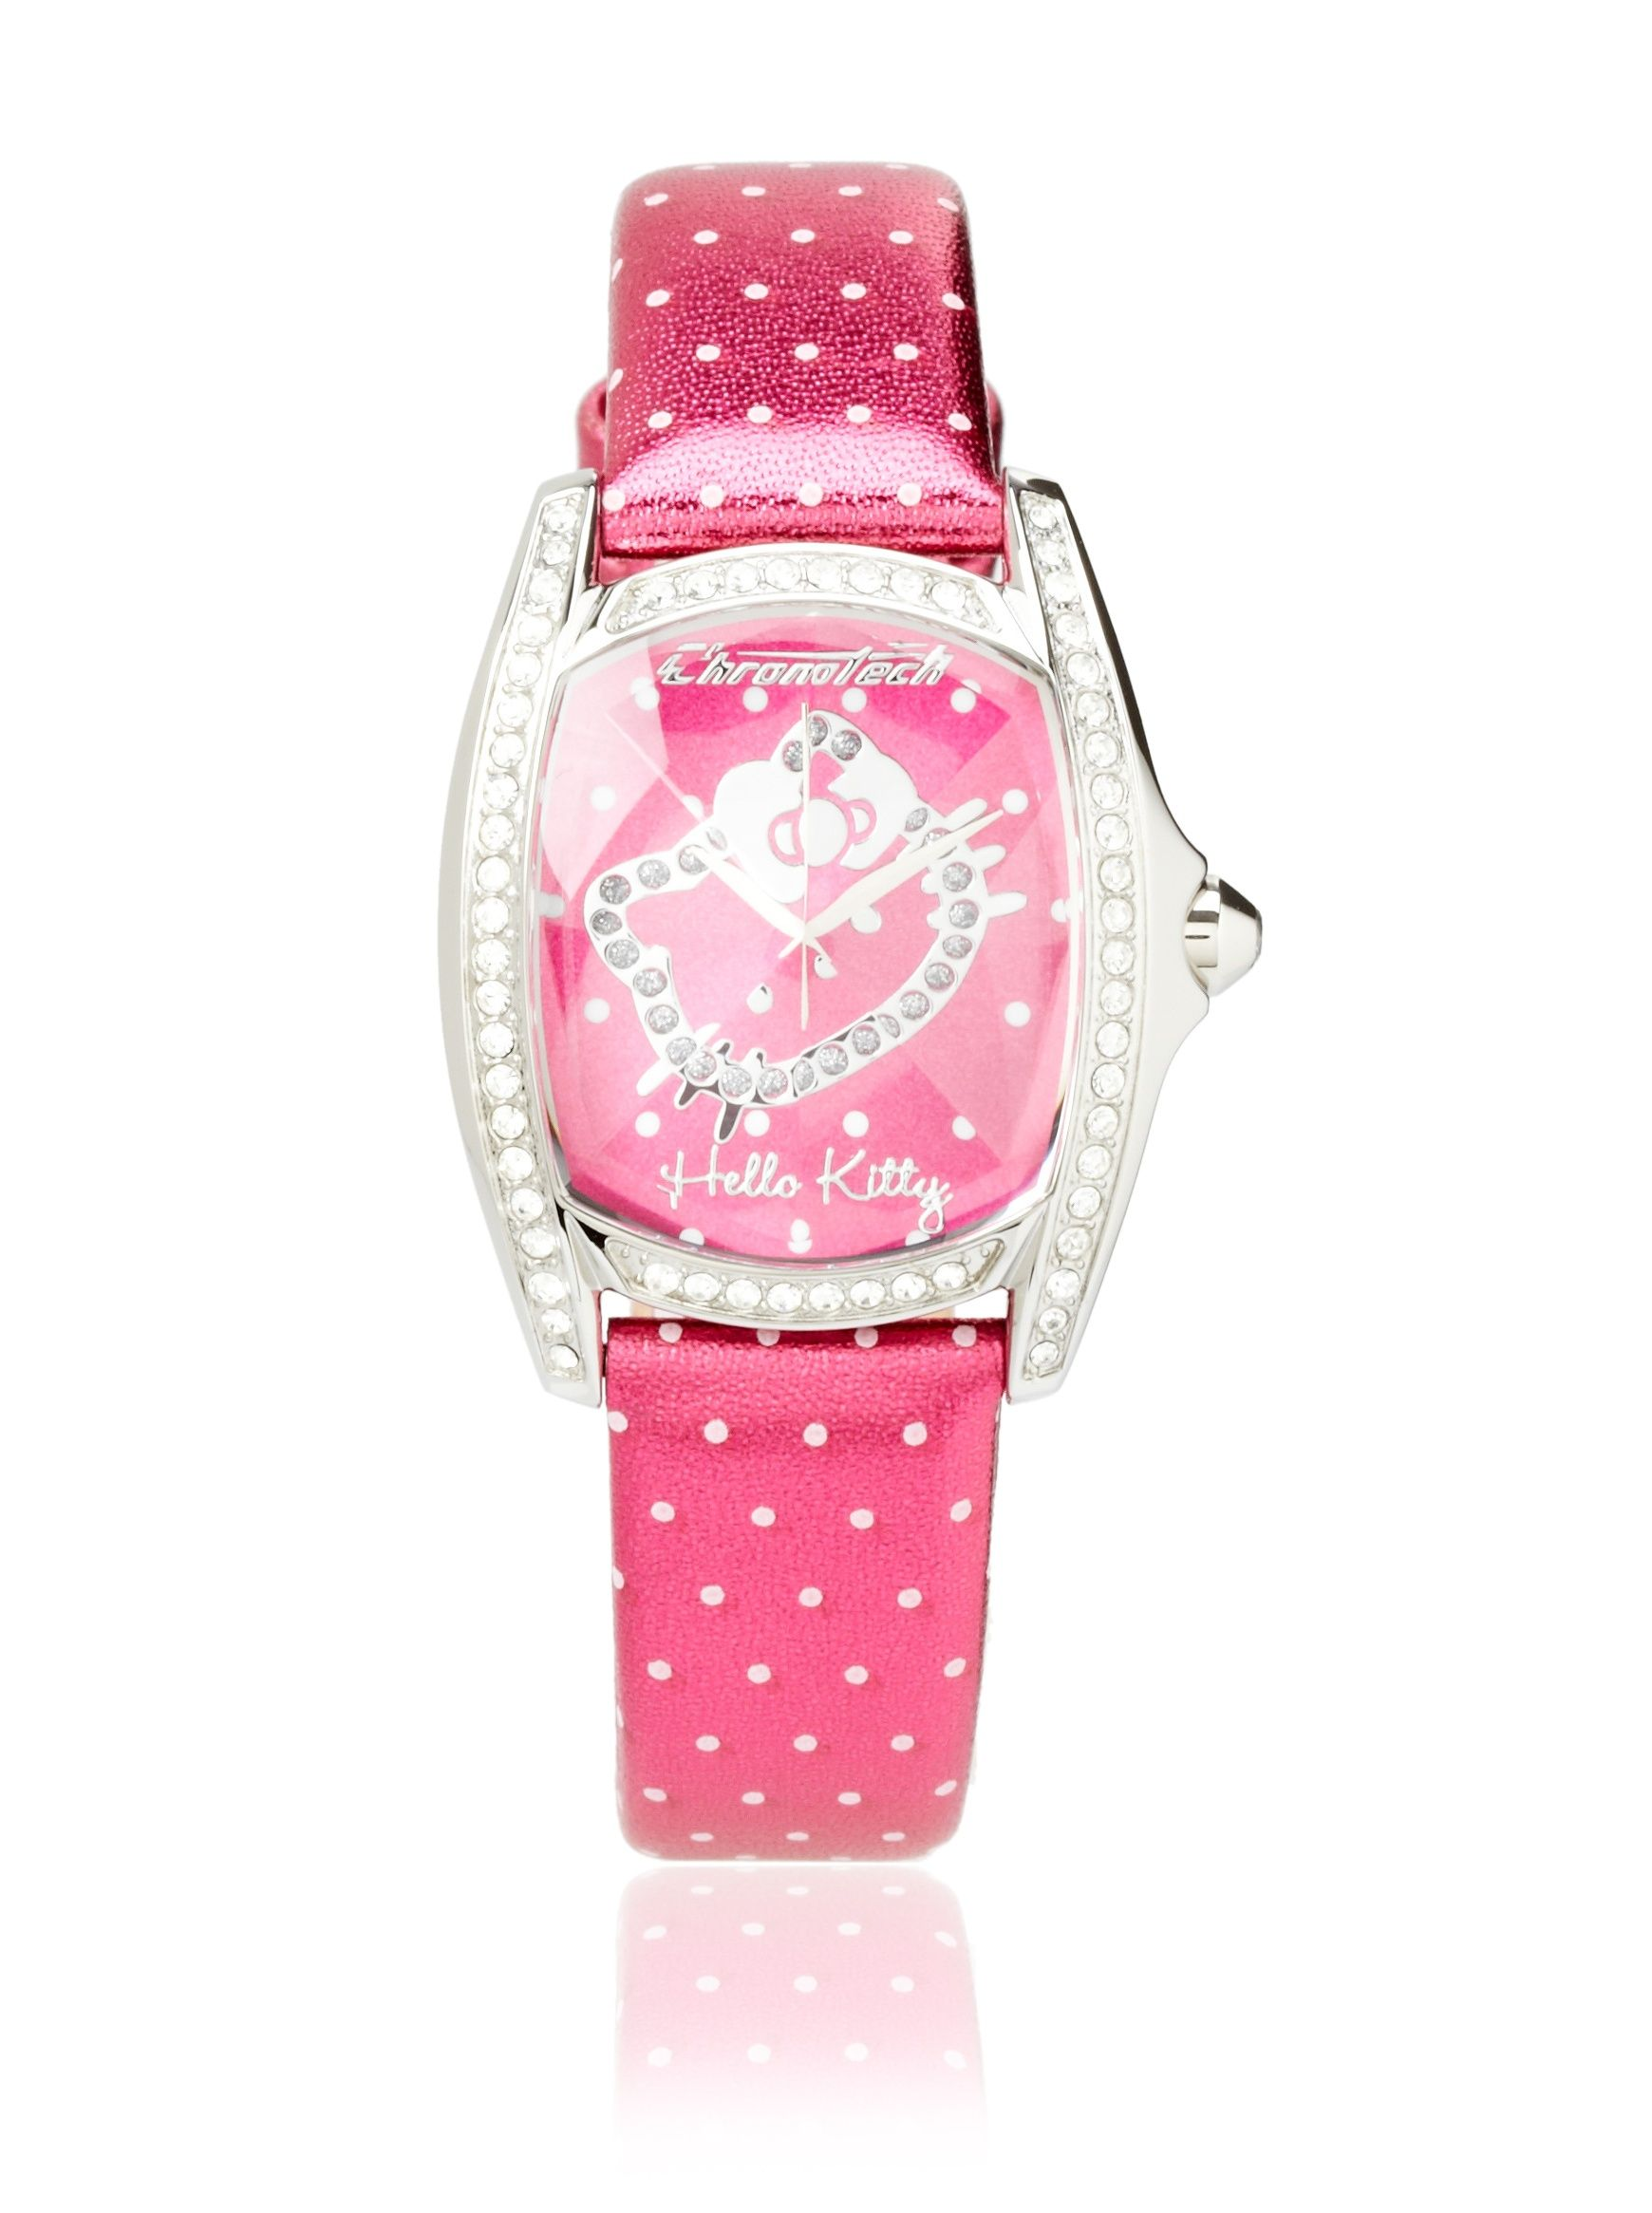 Hello Kitty Pink Dot Stainless Steel Watch Crystal Bezel